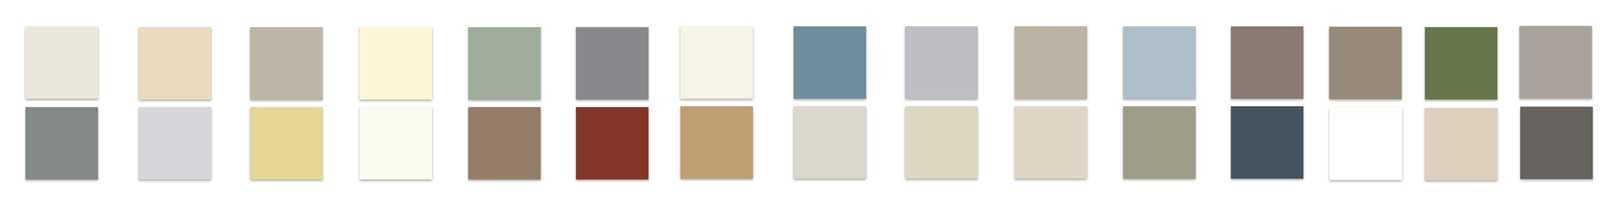 Squares of available siding colors